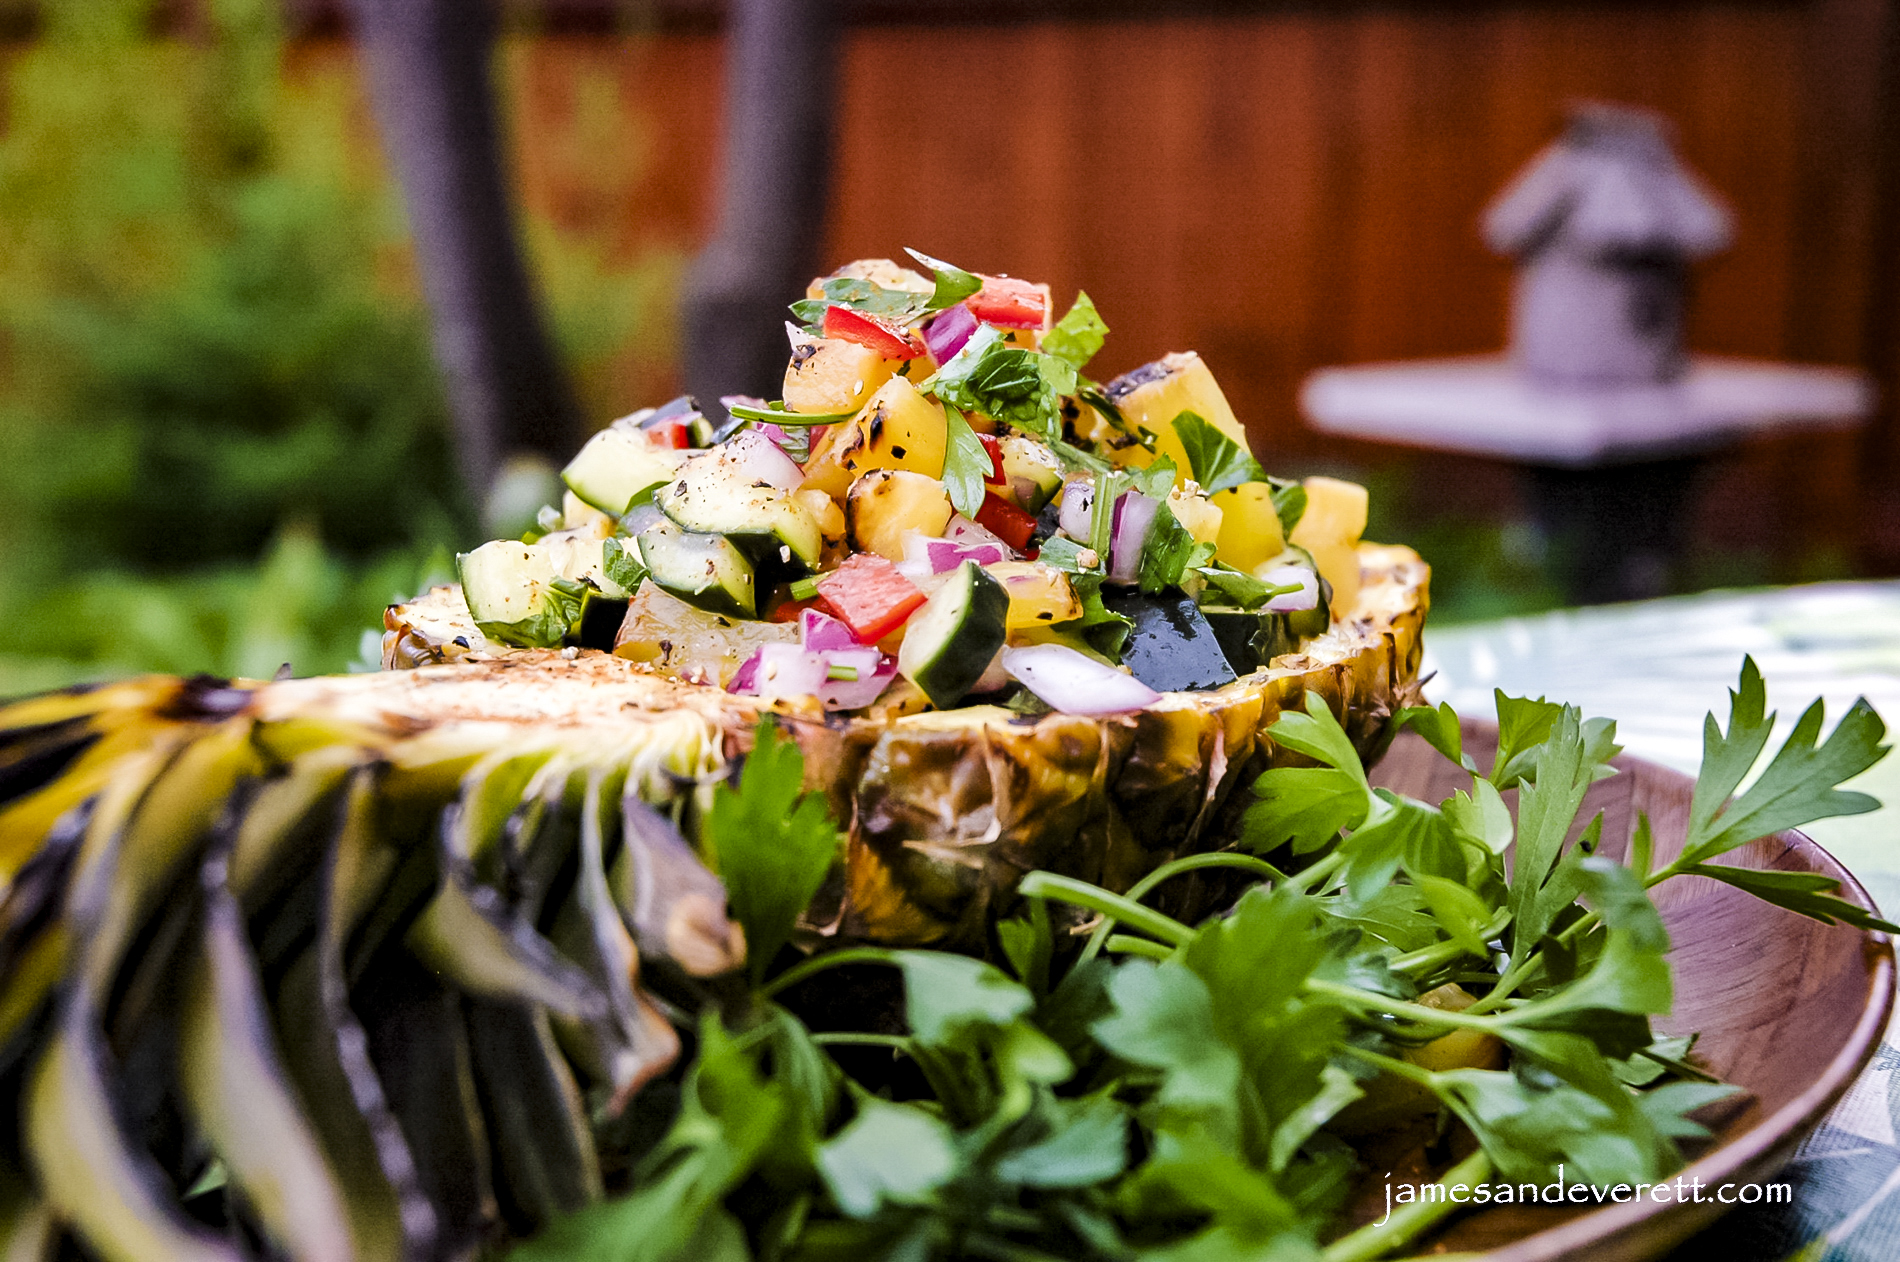 Grilled Pineapple & Cucumber Salad